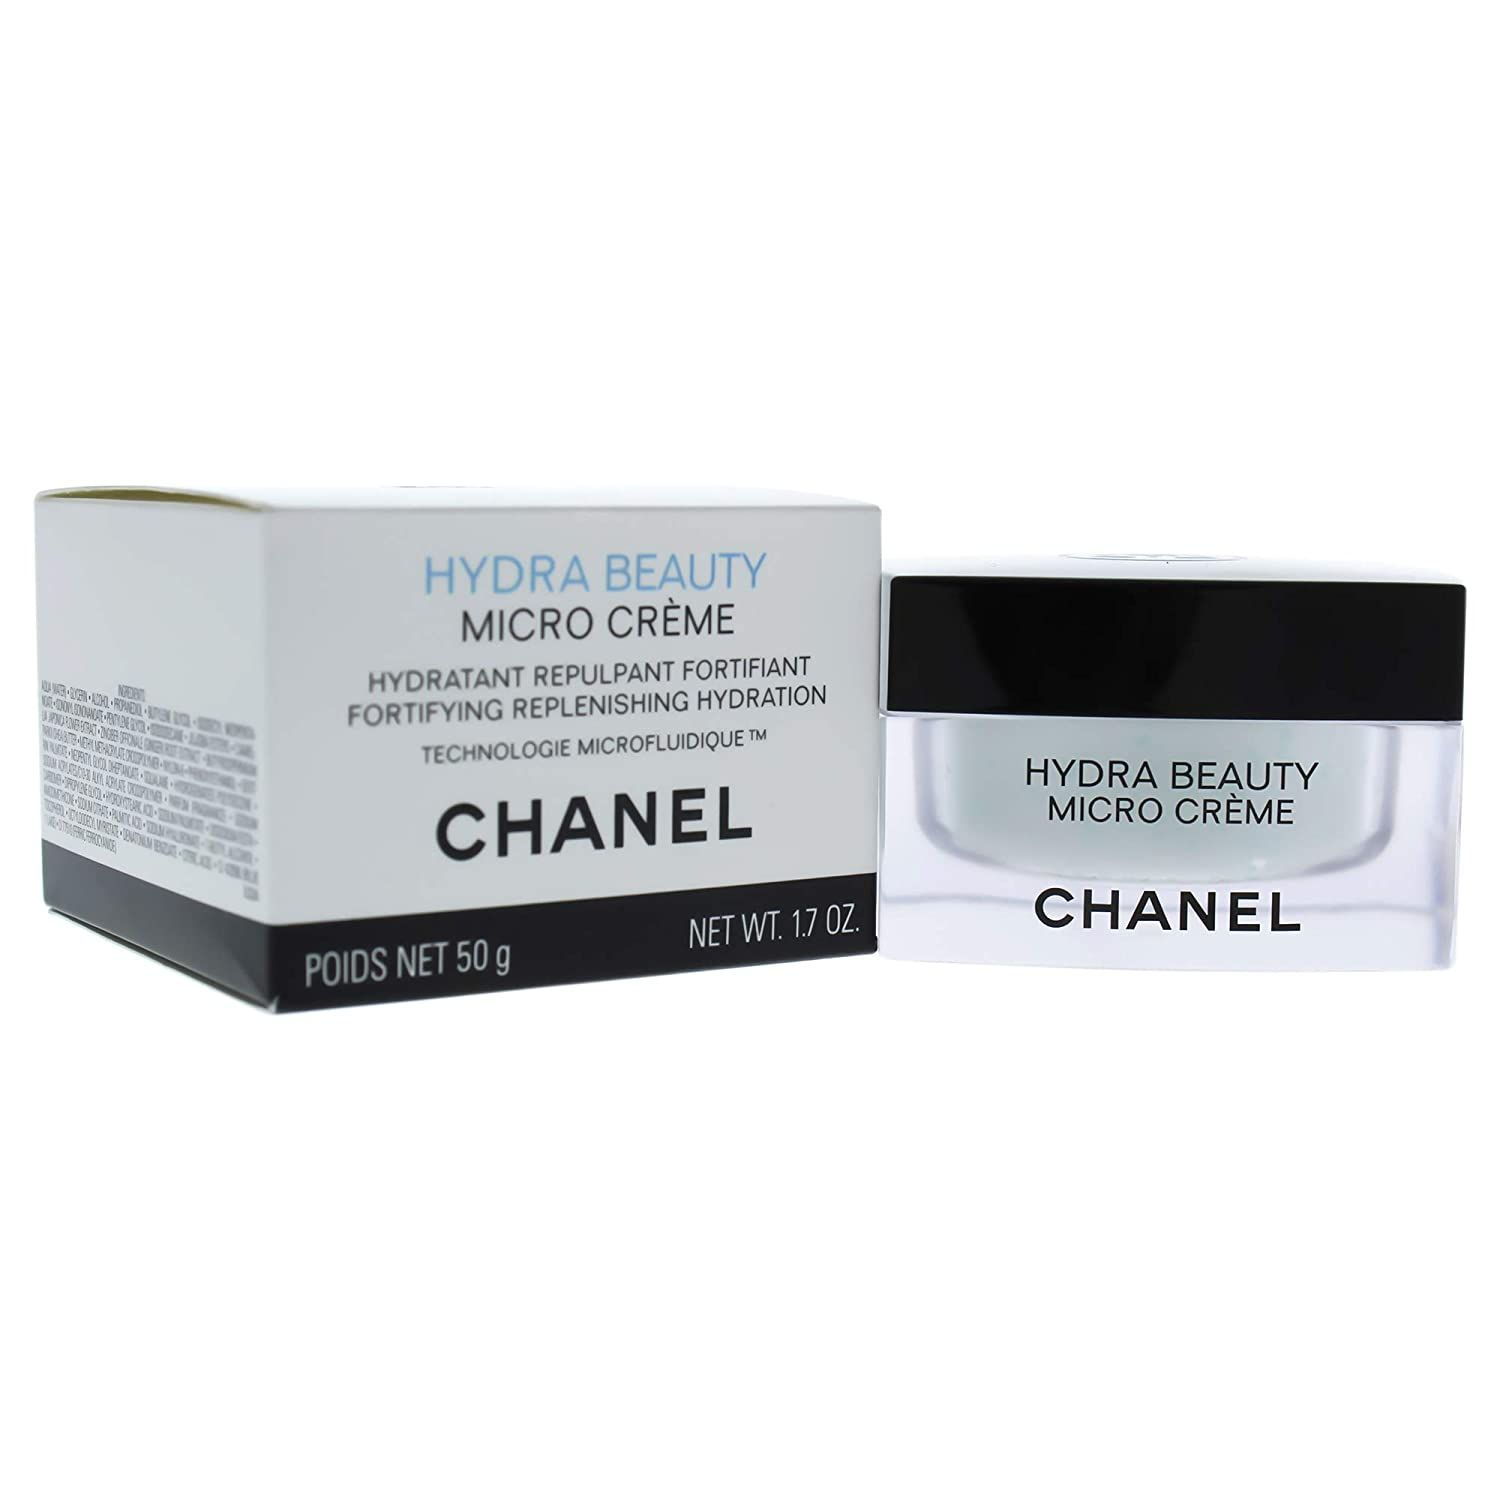 Chanel Hydra Beauty Micro Creme 1 7 Ounce Read More At The Image Link This Is An Affiliate Link Chanel Hydra Beauty Skin Protection Moisturiser